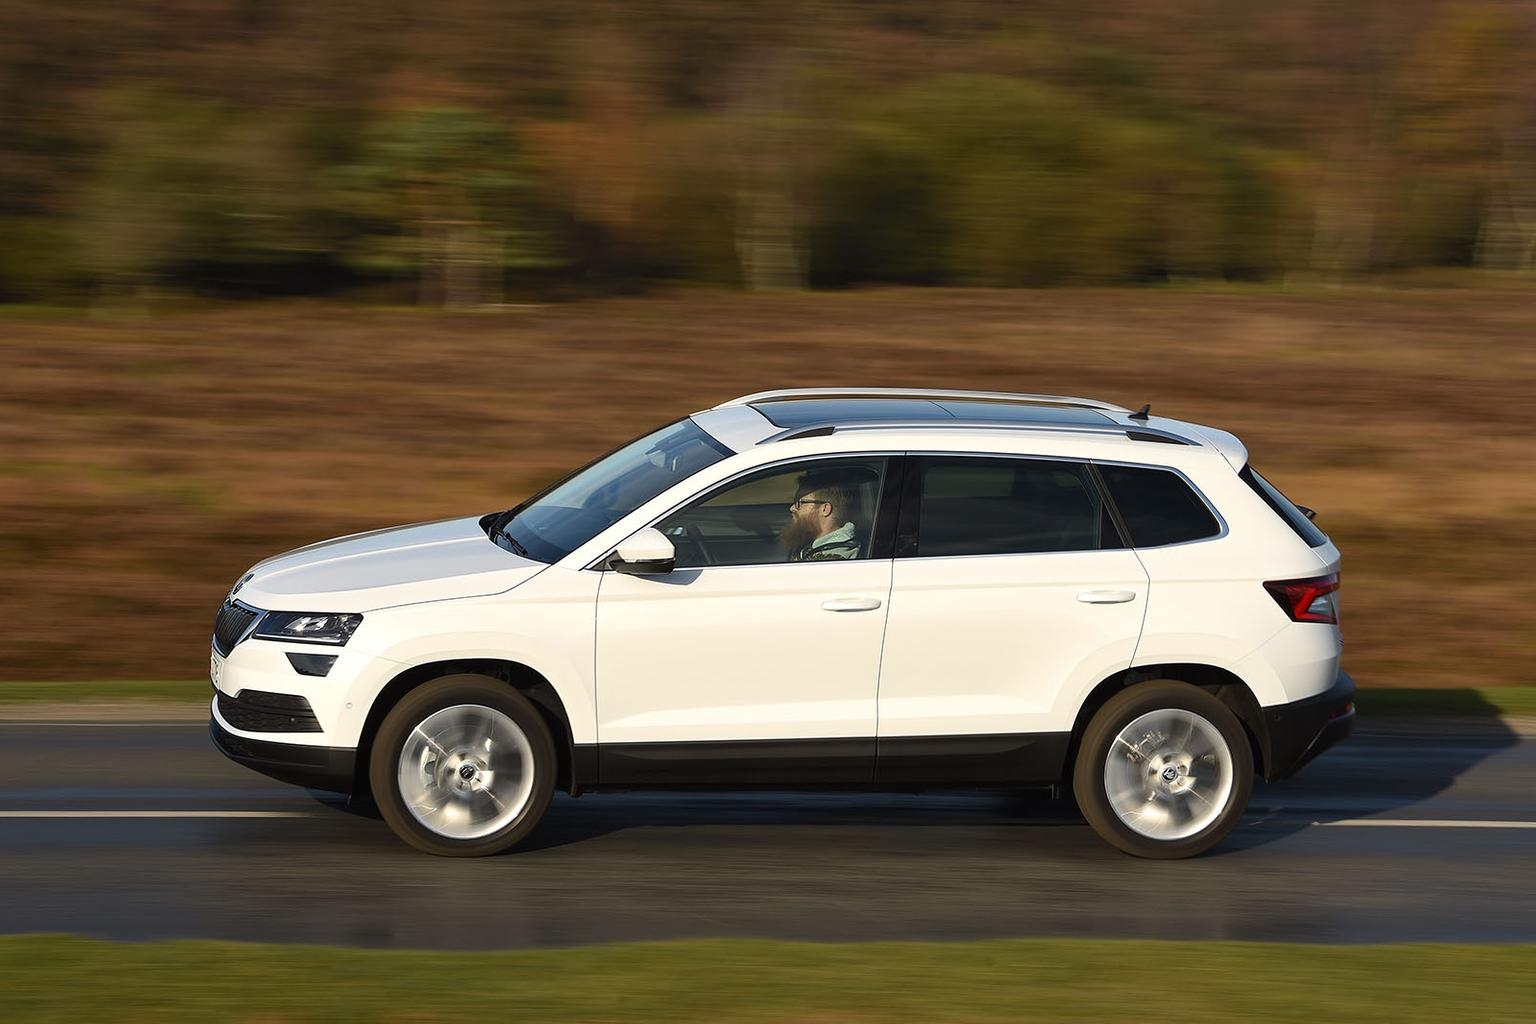 New Skoda Karoq vs Seat Ateca